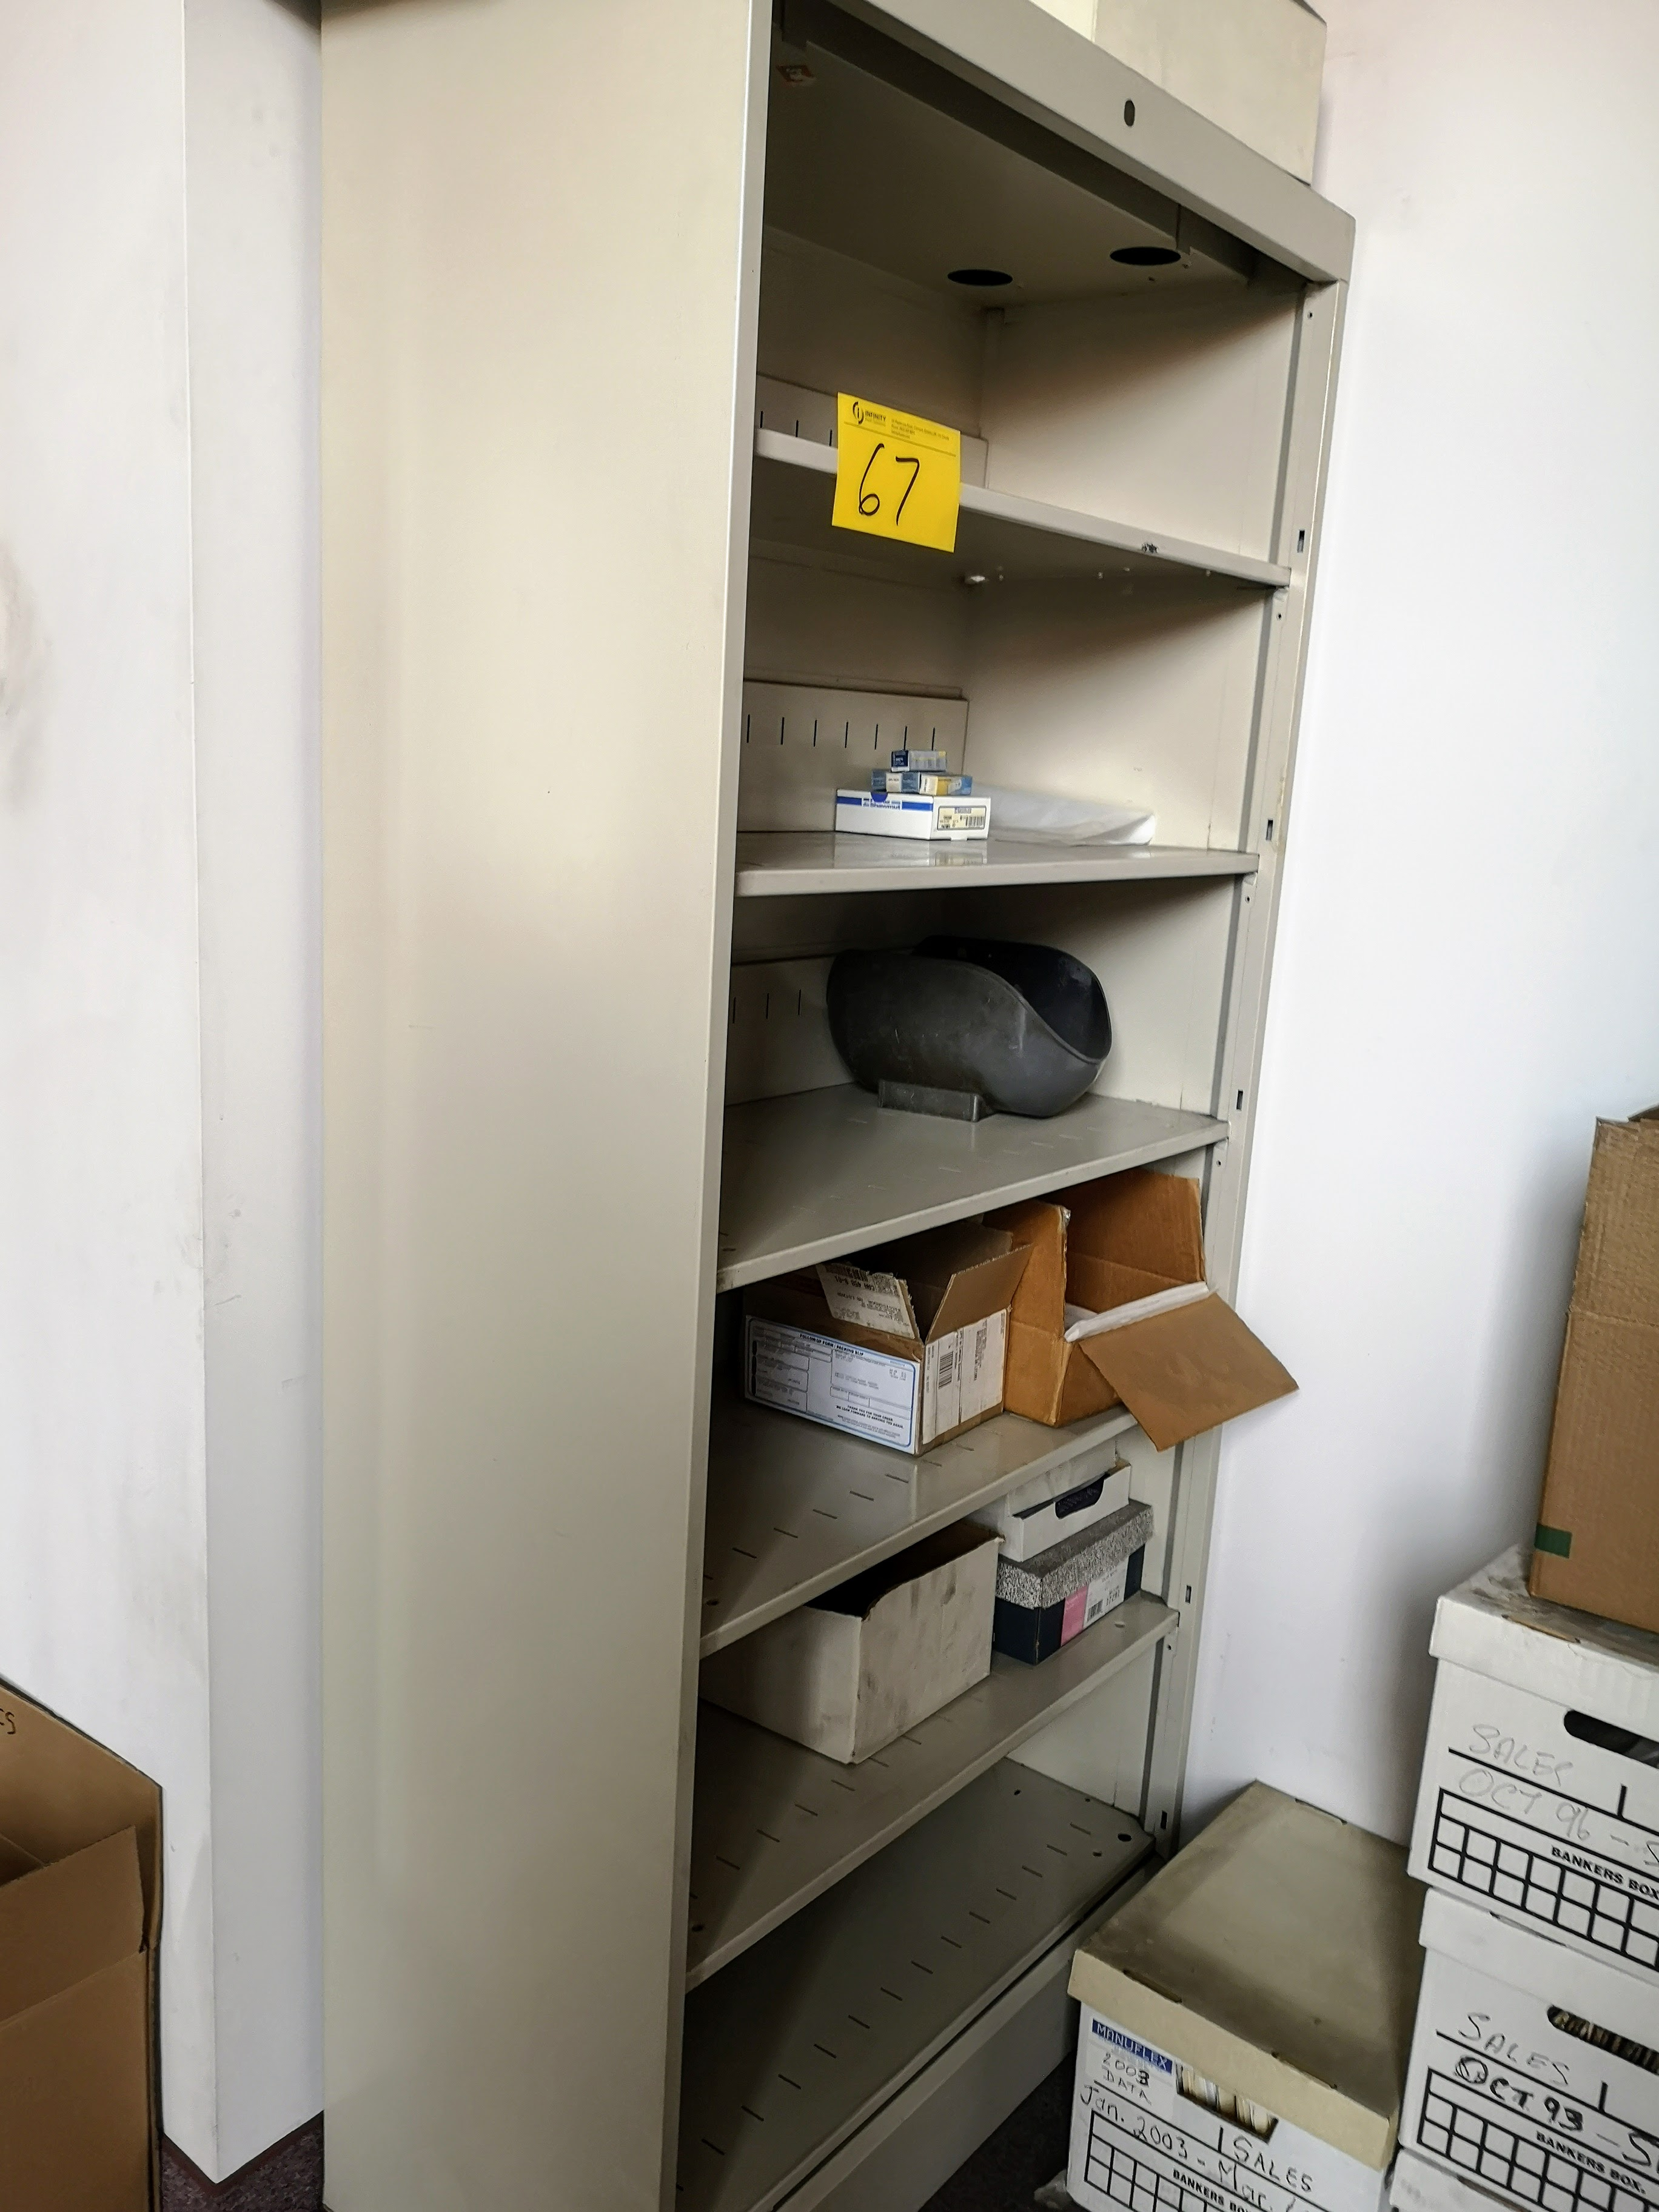 CONTENTS OF OUTTER OFFICE (NO PERSONAL EFFECTS OR COMPUTER EQUIPMENT) - Image 3 of 3